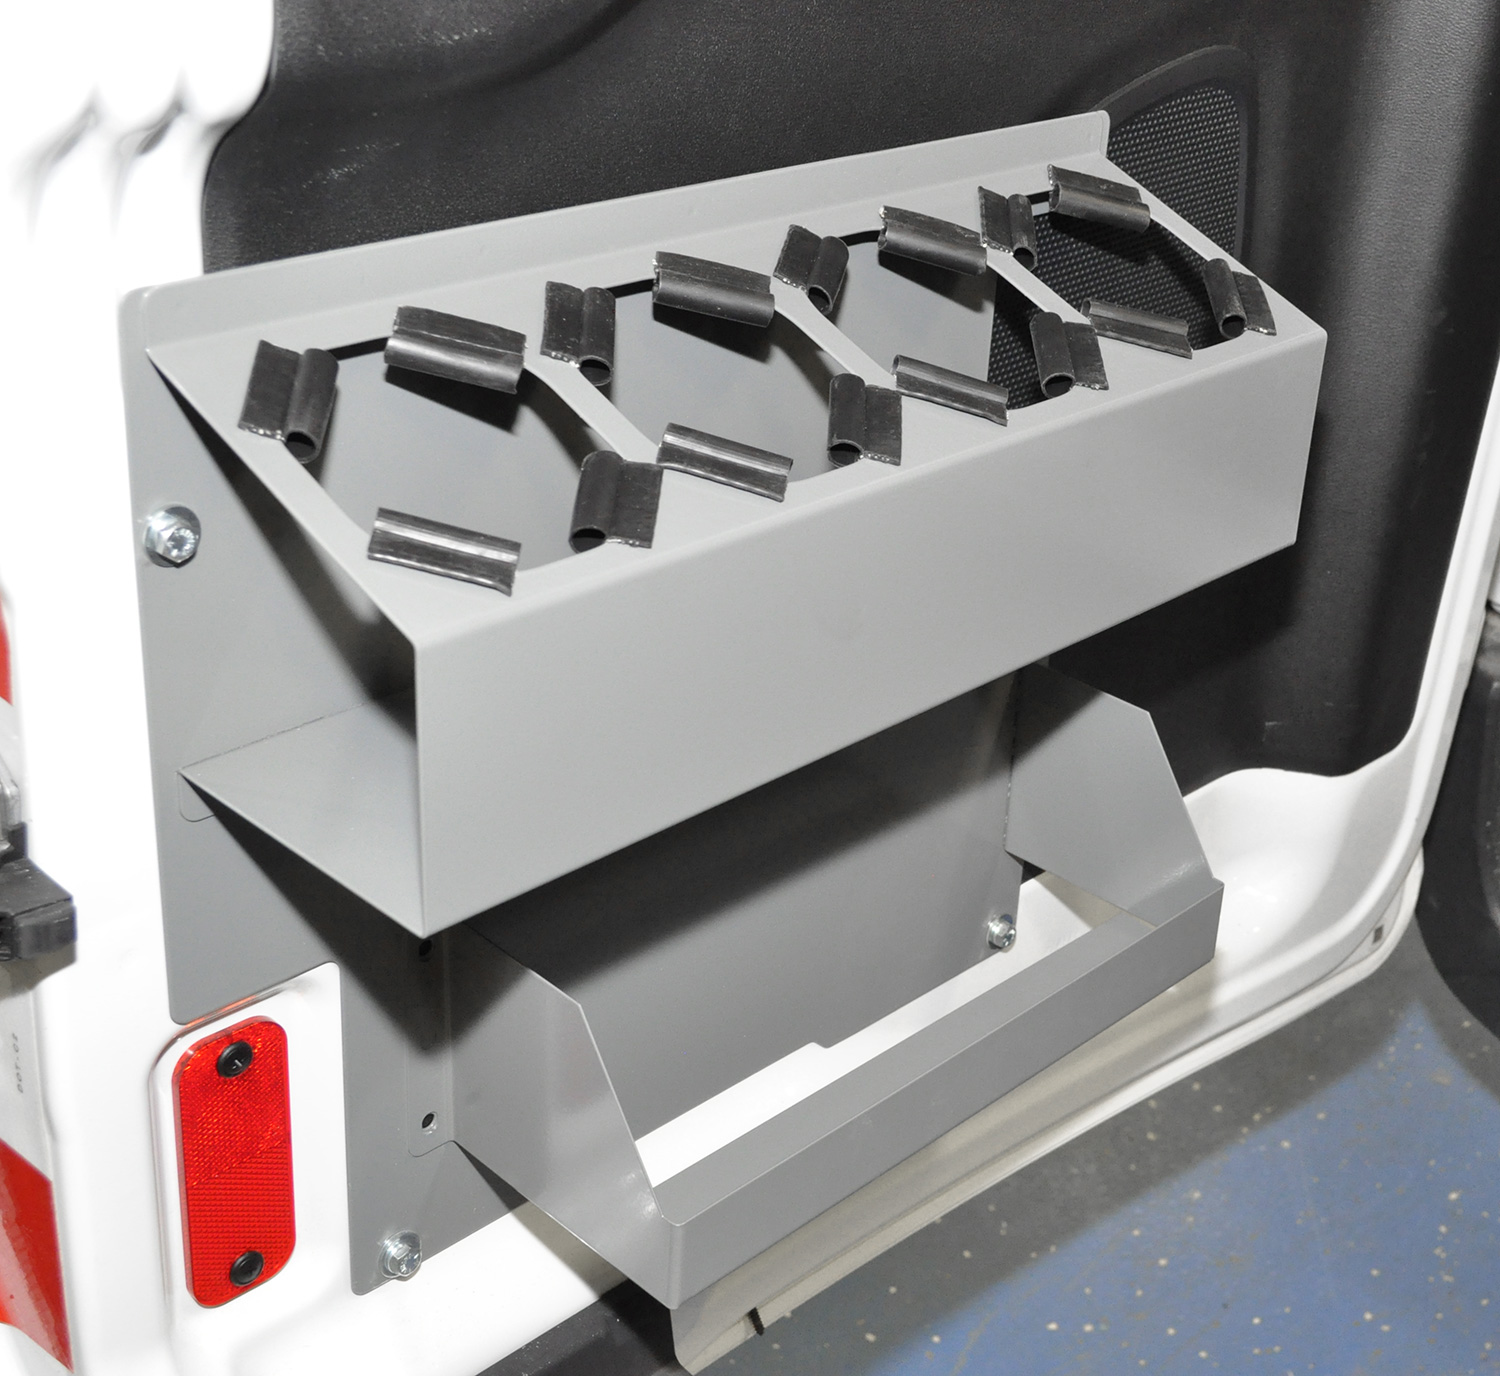 This box holder and aerosol can tray holder features a quiet kit so the aerosol cans do not rattle.